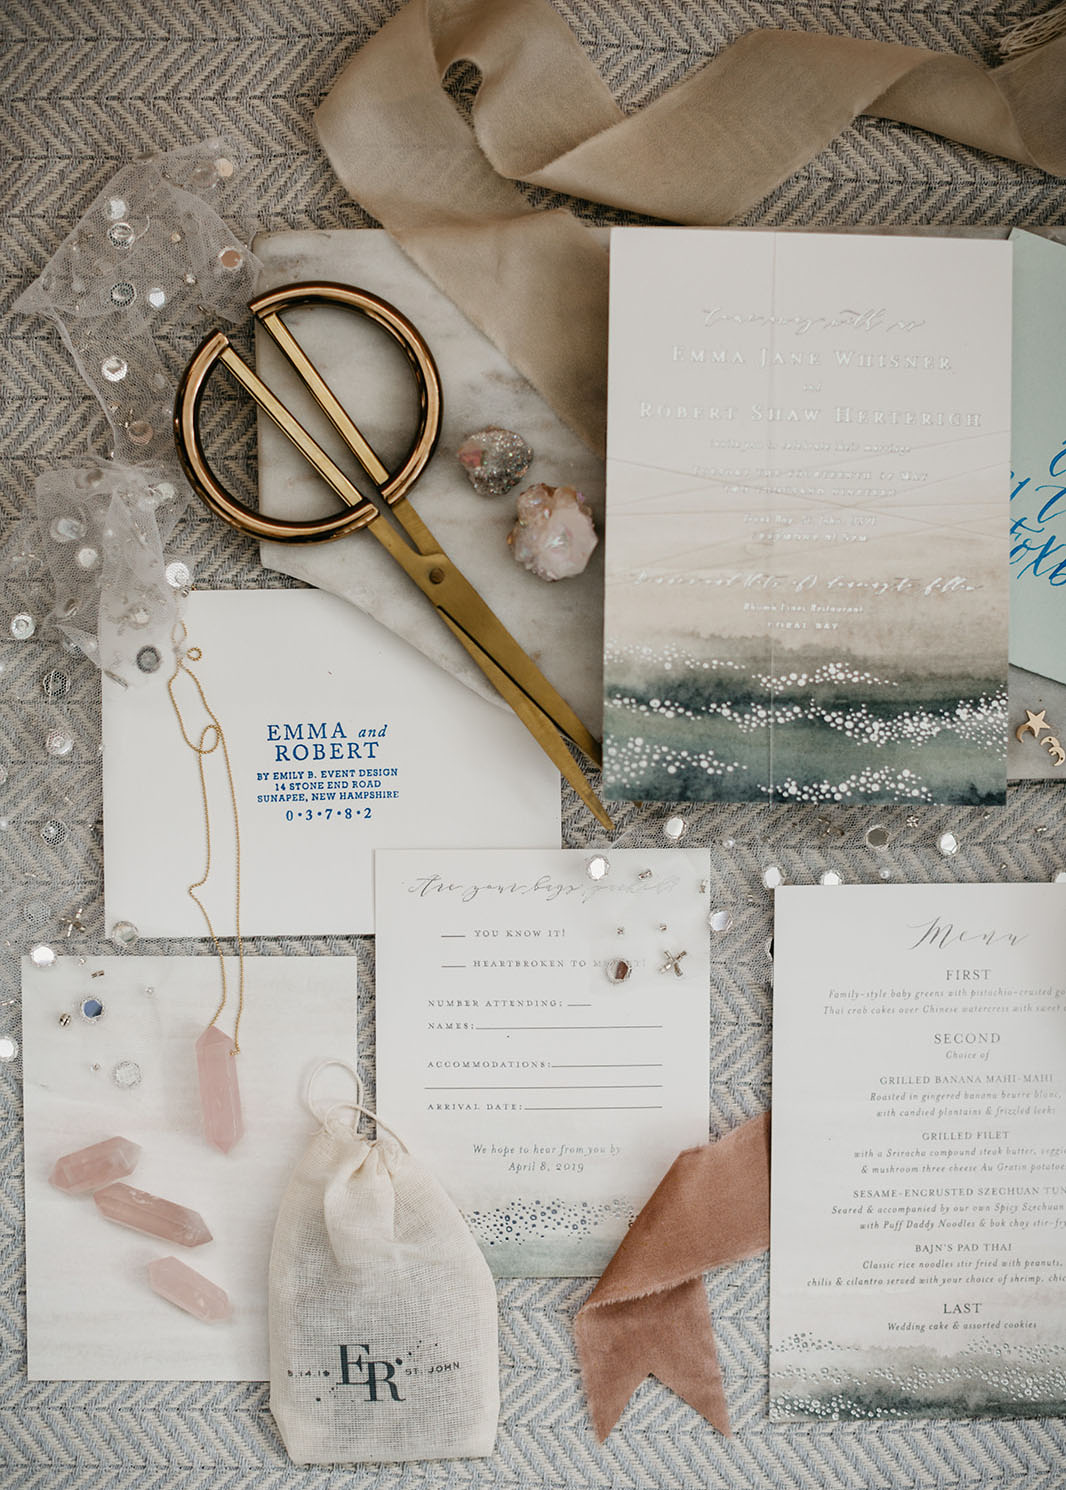 The wedding invitation suite was also iridescent and silver infused